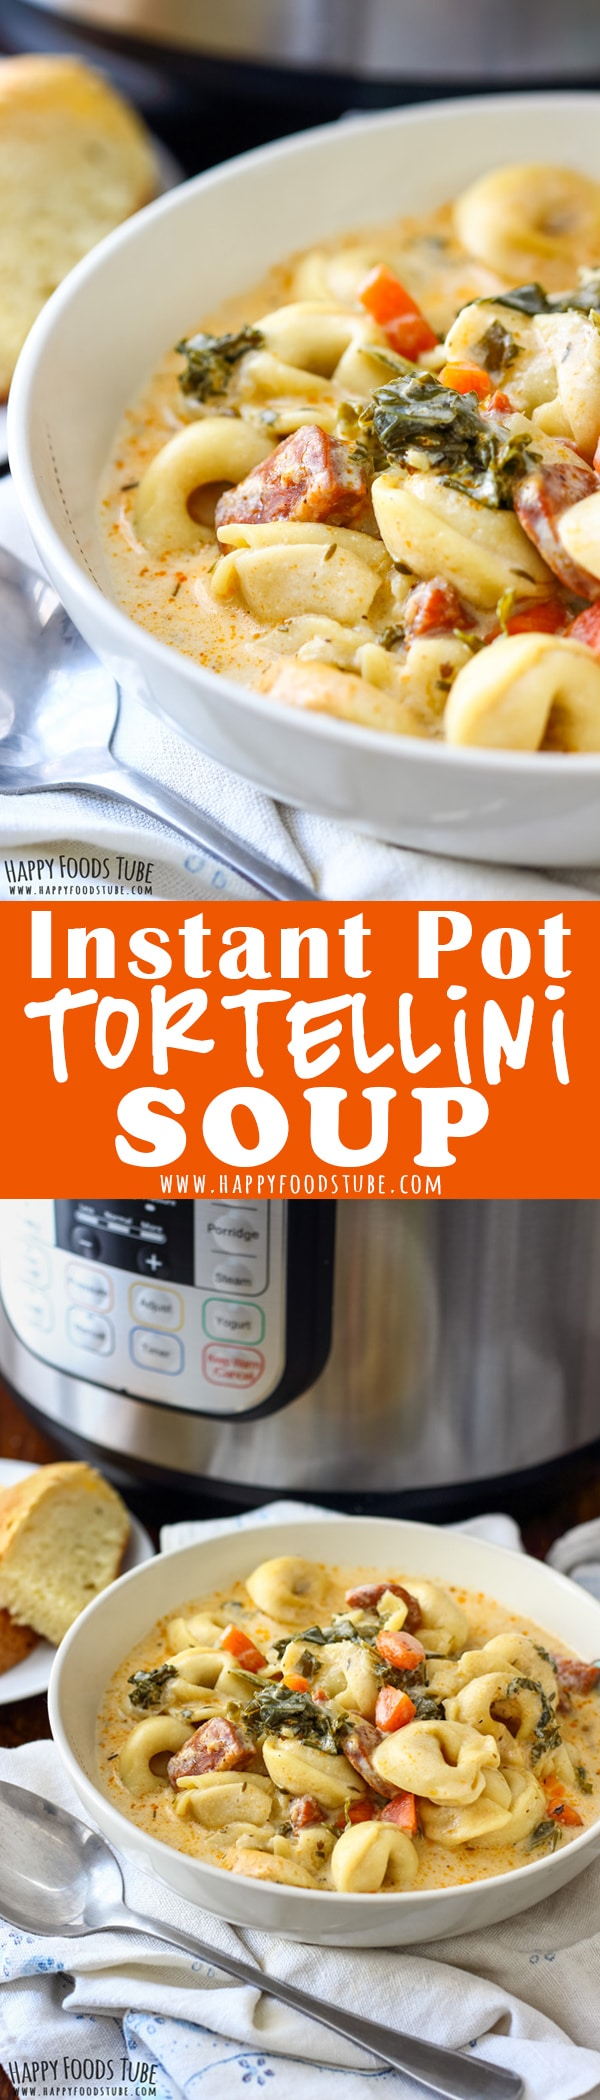 This Instant Pot Creamy Tortellini Soup is a must make soup if you have Instant Pot. It's creamy, hearty and perfect for this cold weather. #instantpot #tortellini #soups #onepot #recipes #pressurecooker #pasta #italian #food #creamy #chorizo